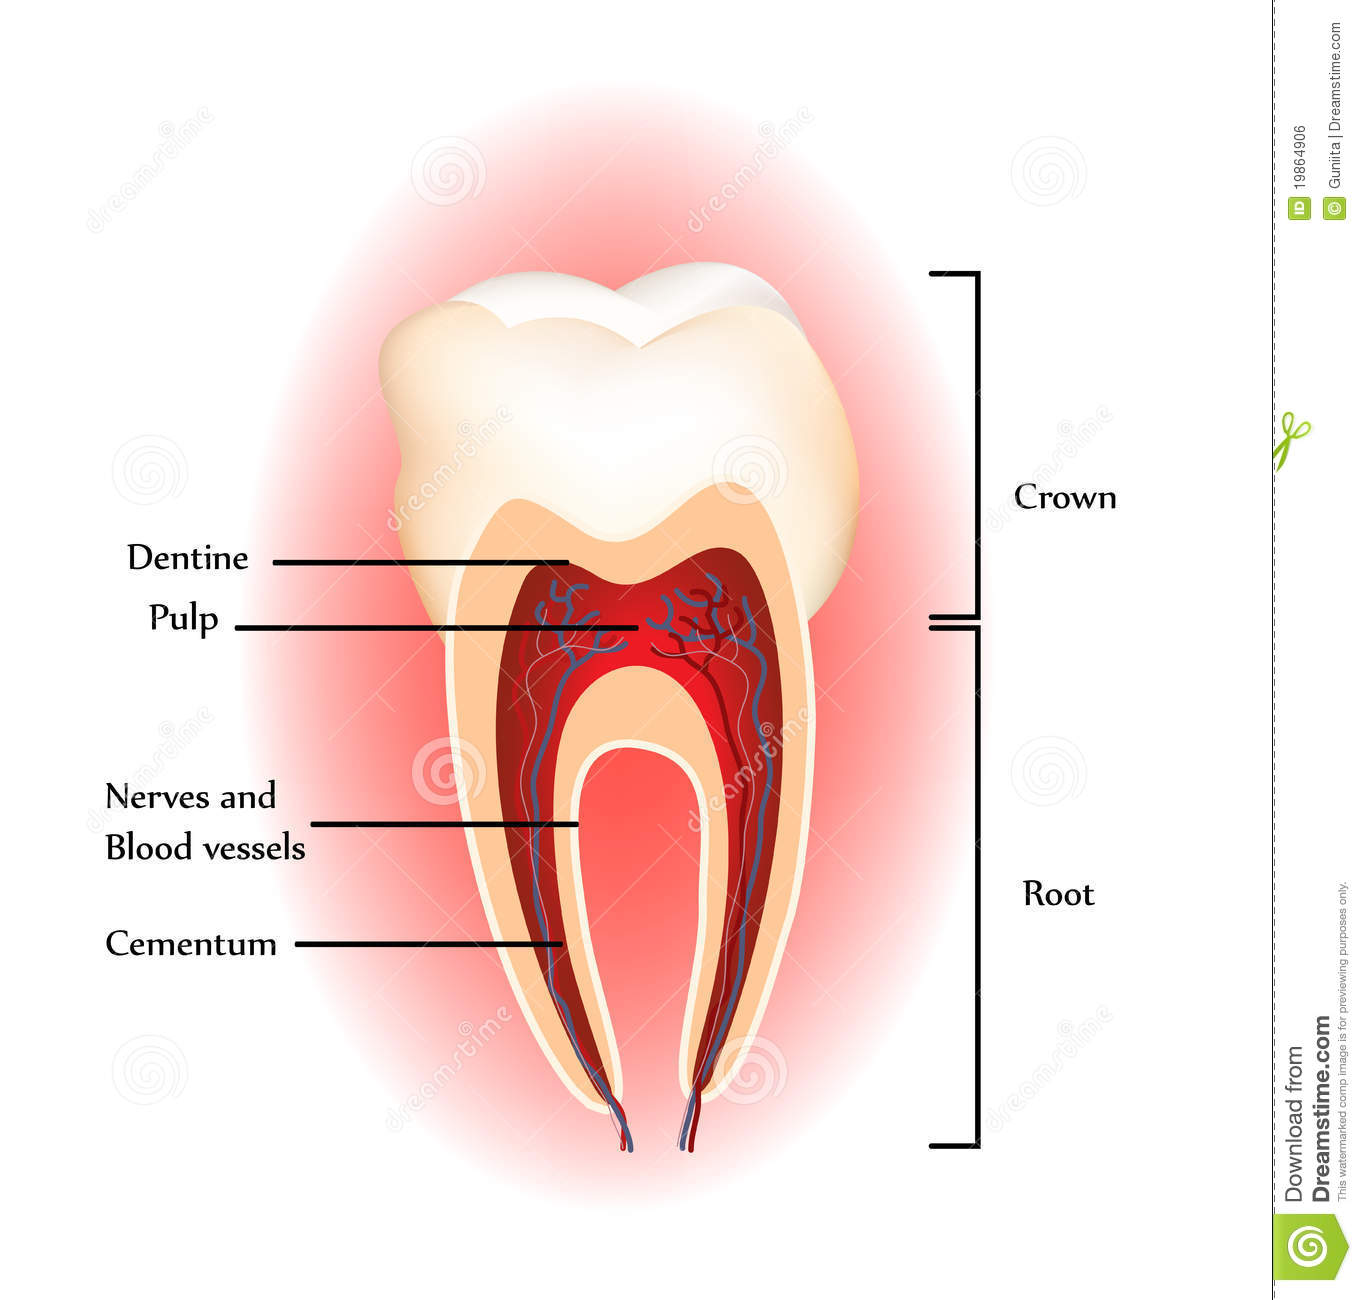 Teeth anatomy stock vector. Illustration of cure, care - 19864906